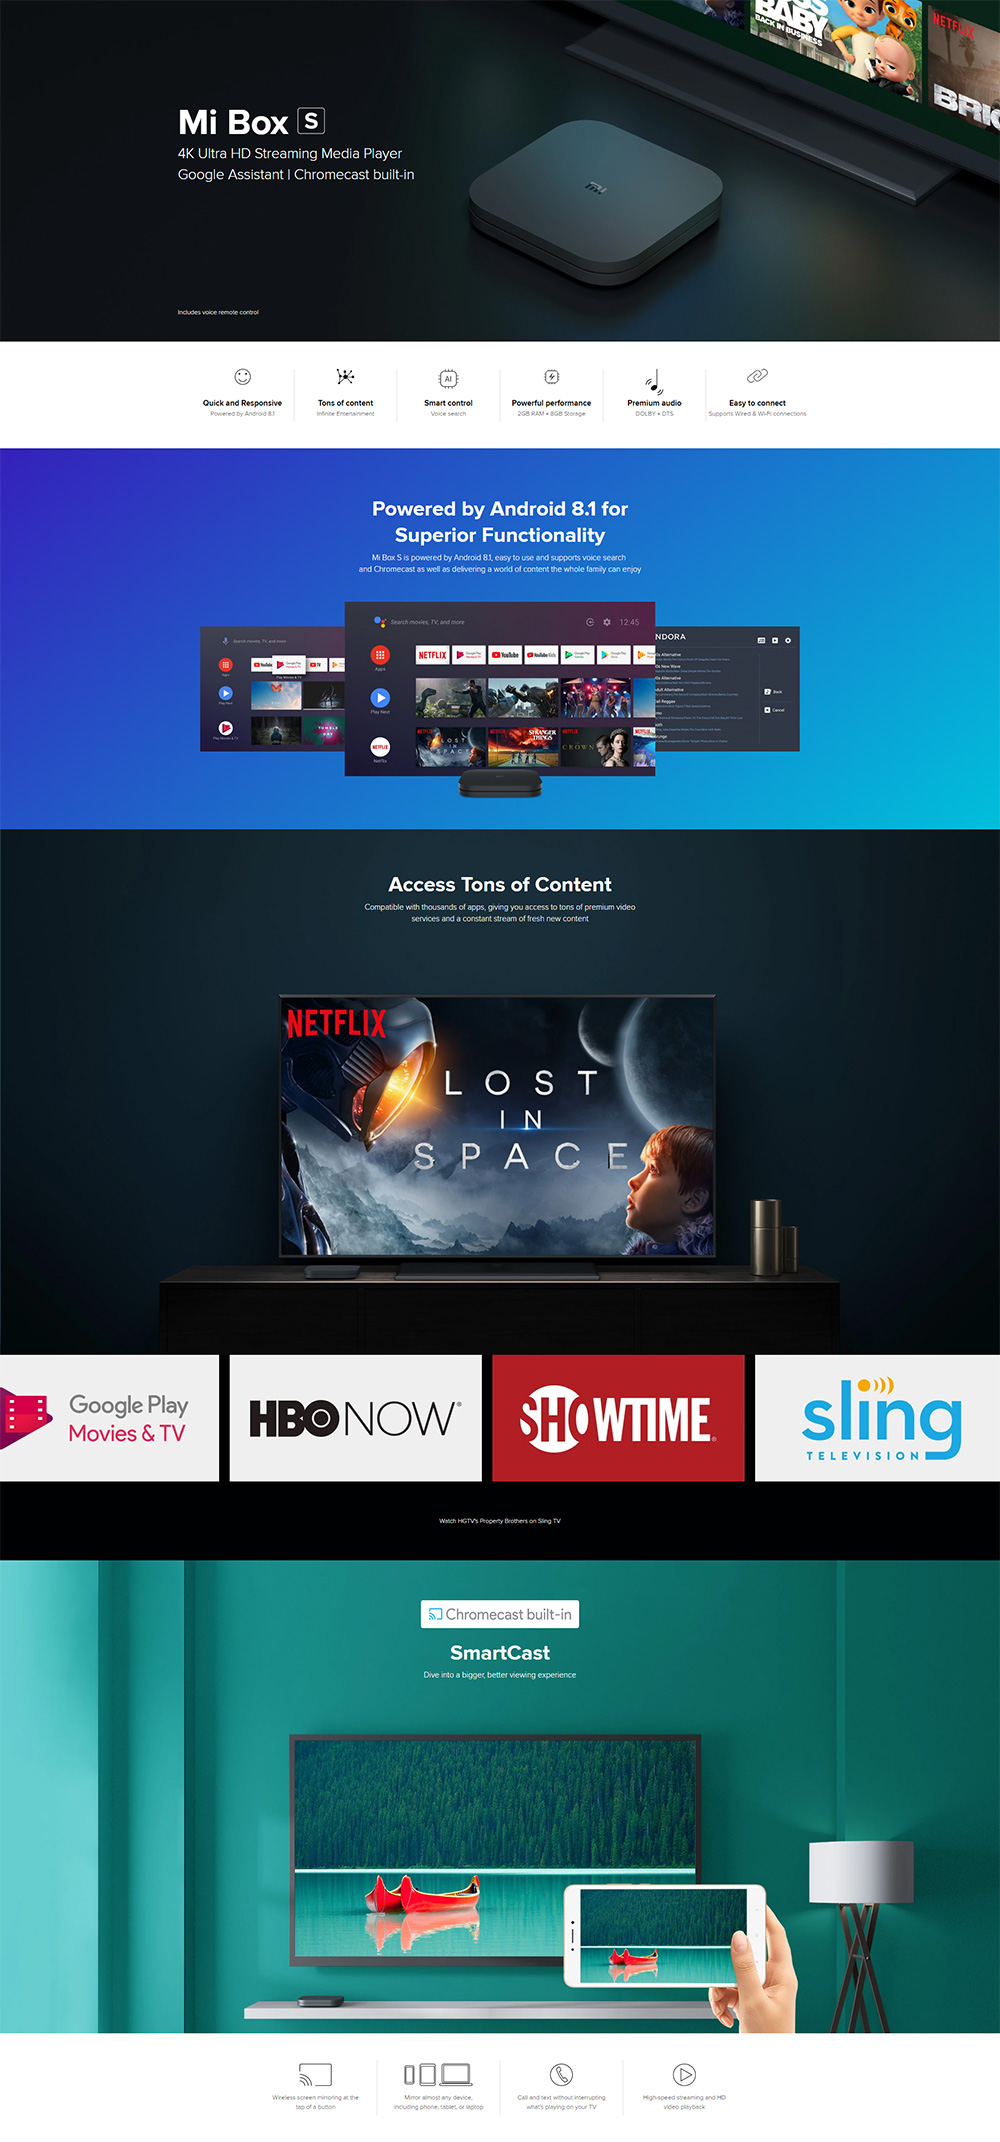 Xiaomi Mi Box S Android TV Streaming Media Player 4K HDR Quad Core 64 Bit  Android 8 1 2GB RAM + 8GB ROM with Google Assistant Remote Official